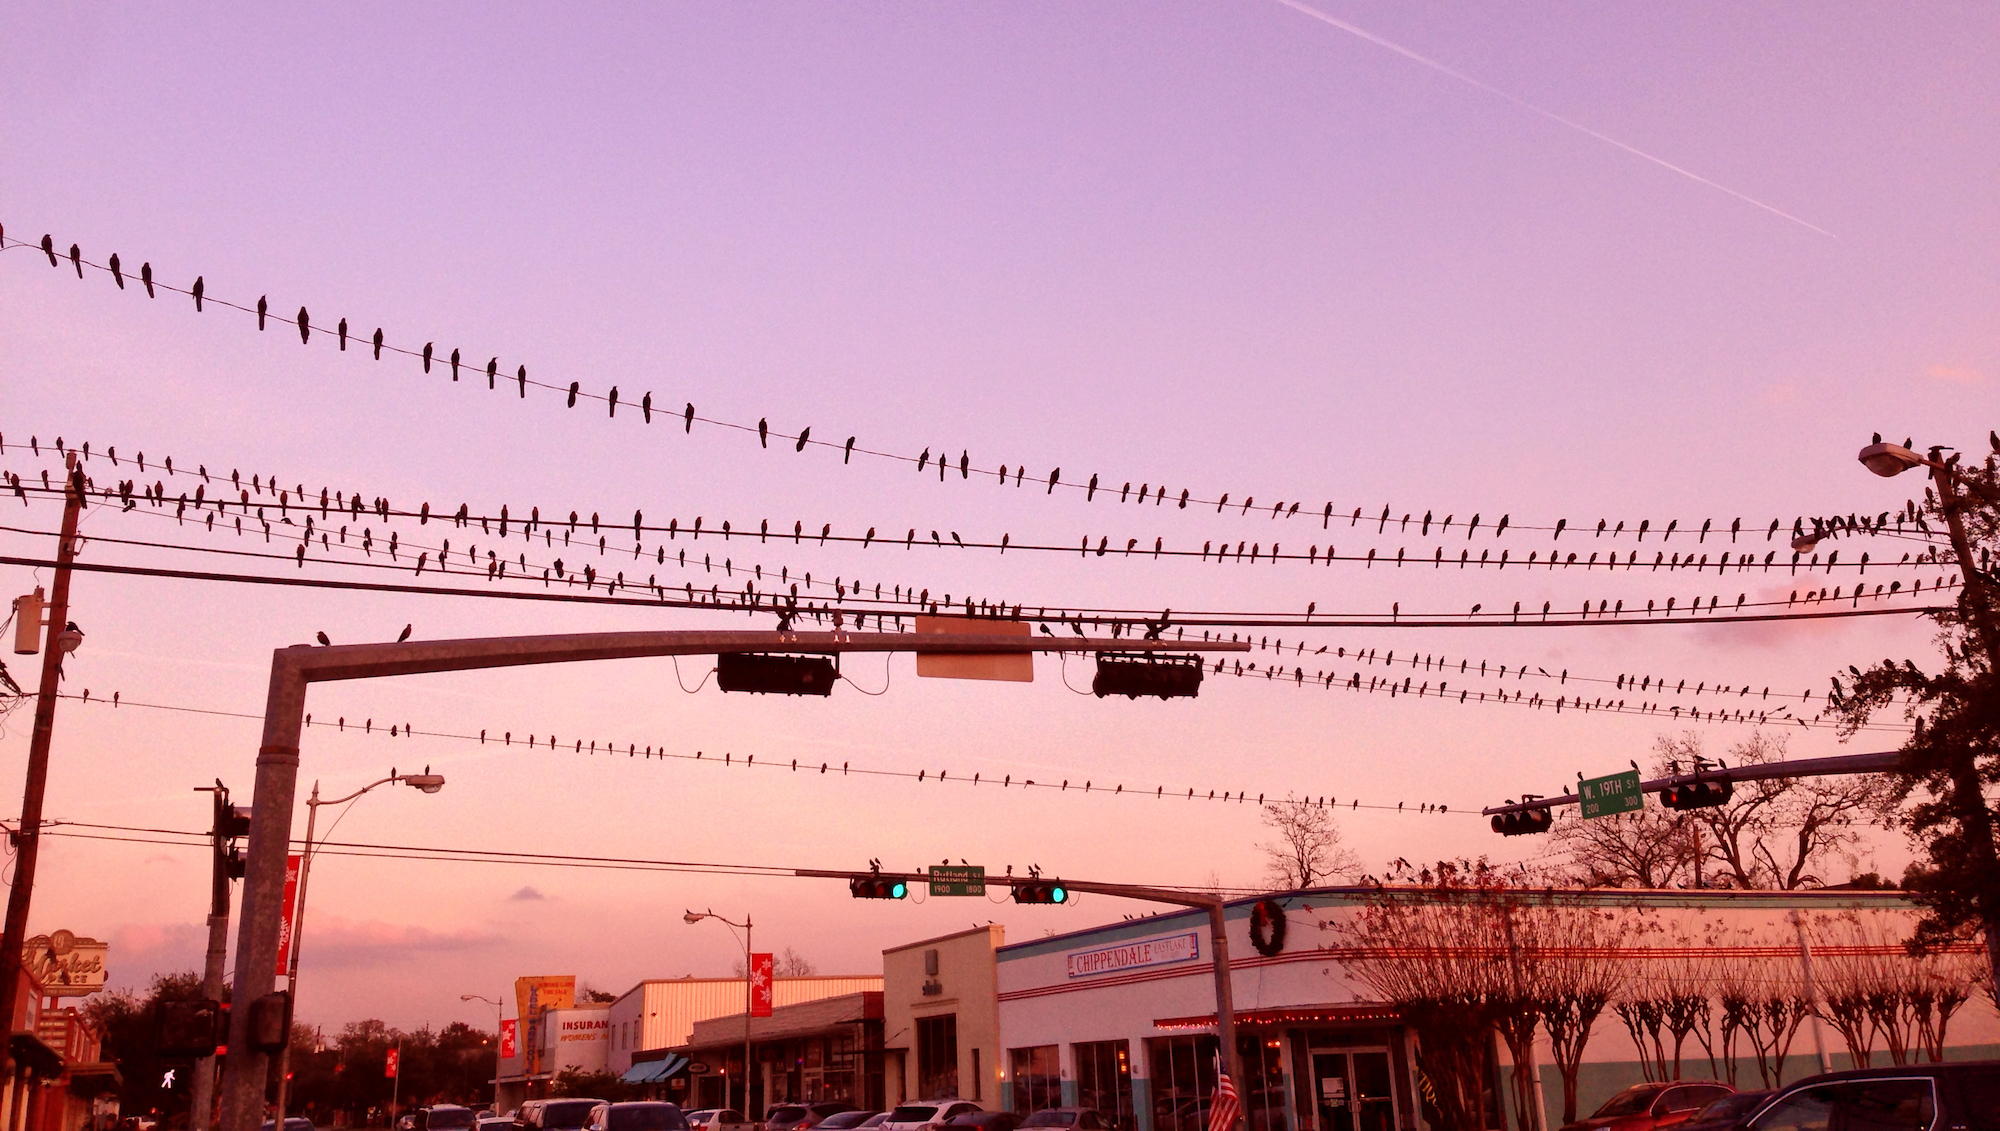 houston-birds-wire-sunset.jpg